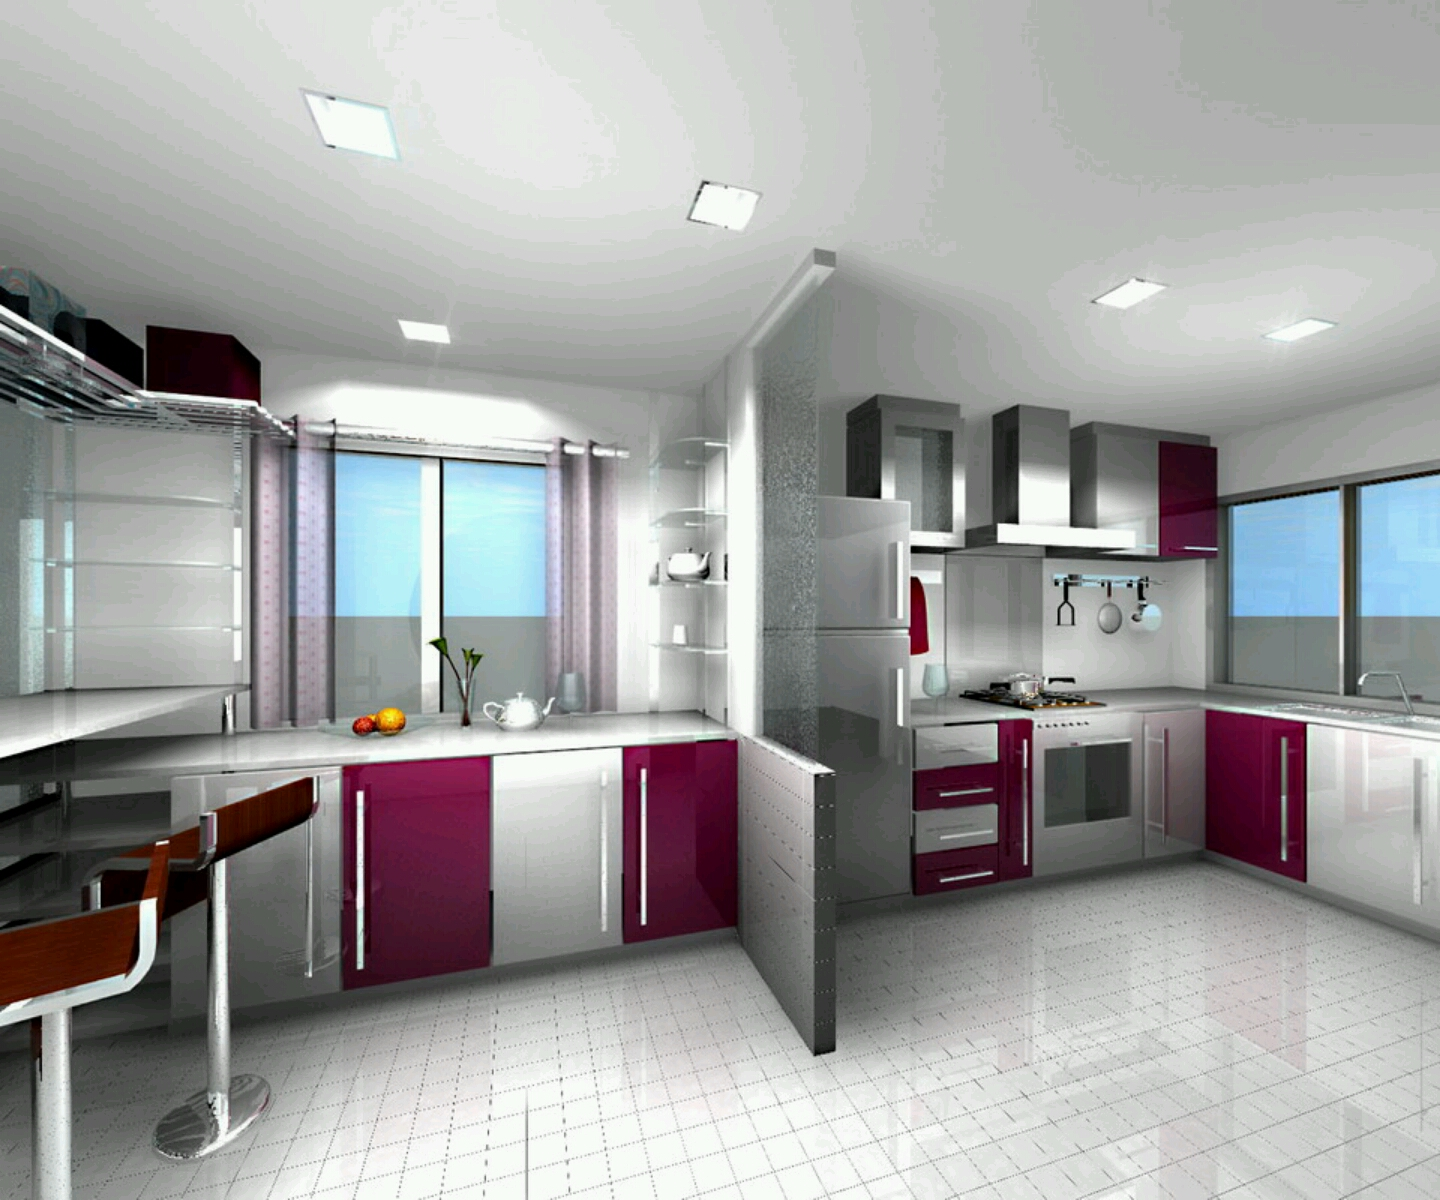 New home designs latest modern homes ultra modern for Kitchen design ideas modern